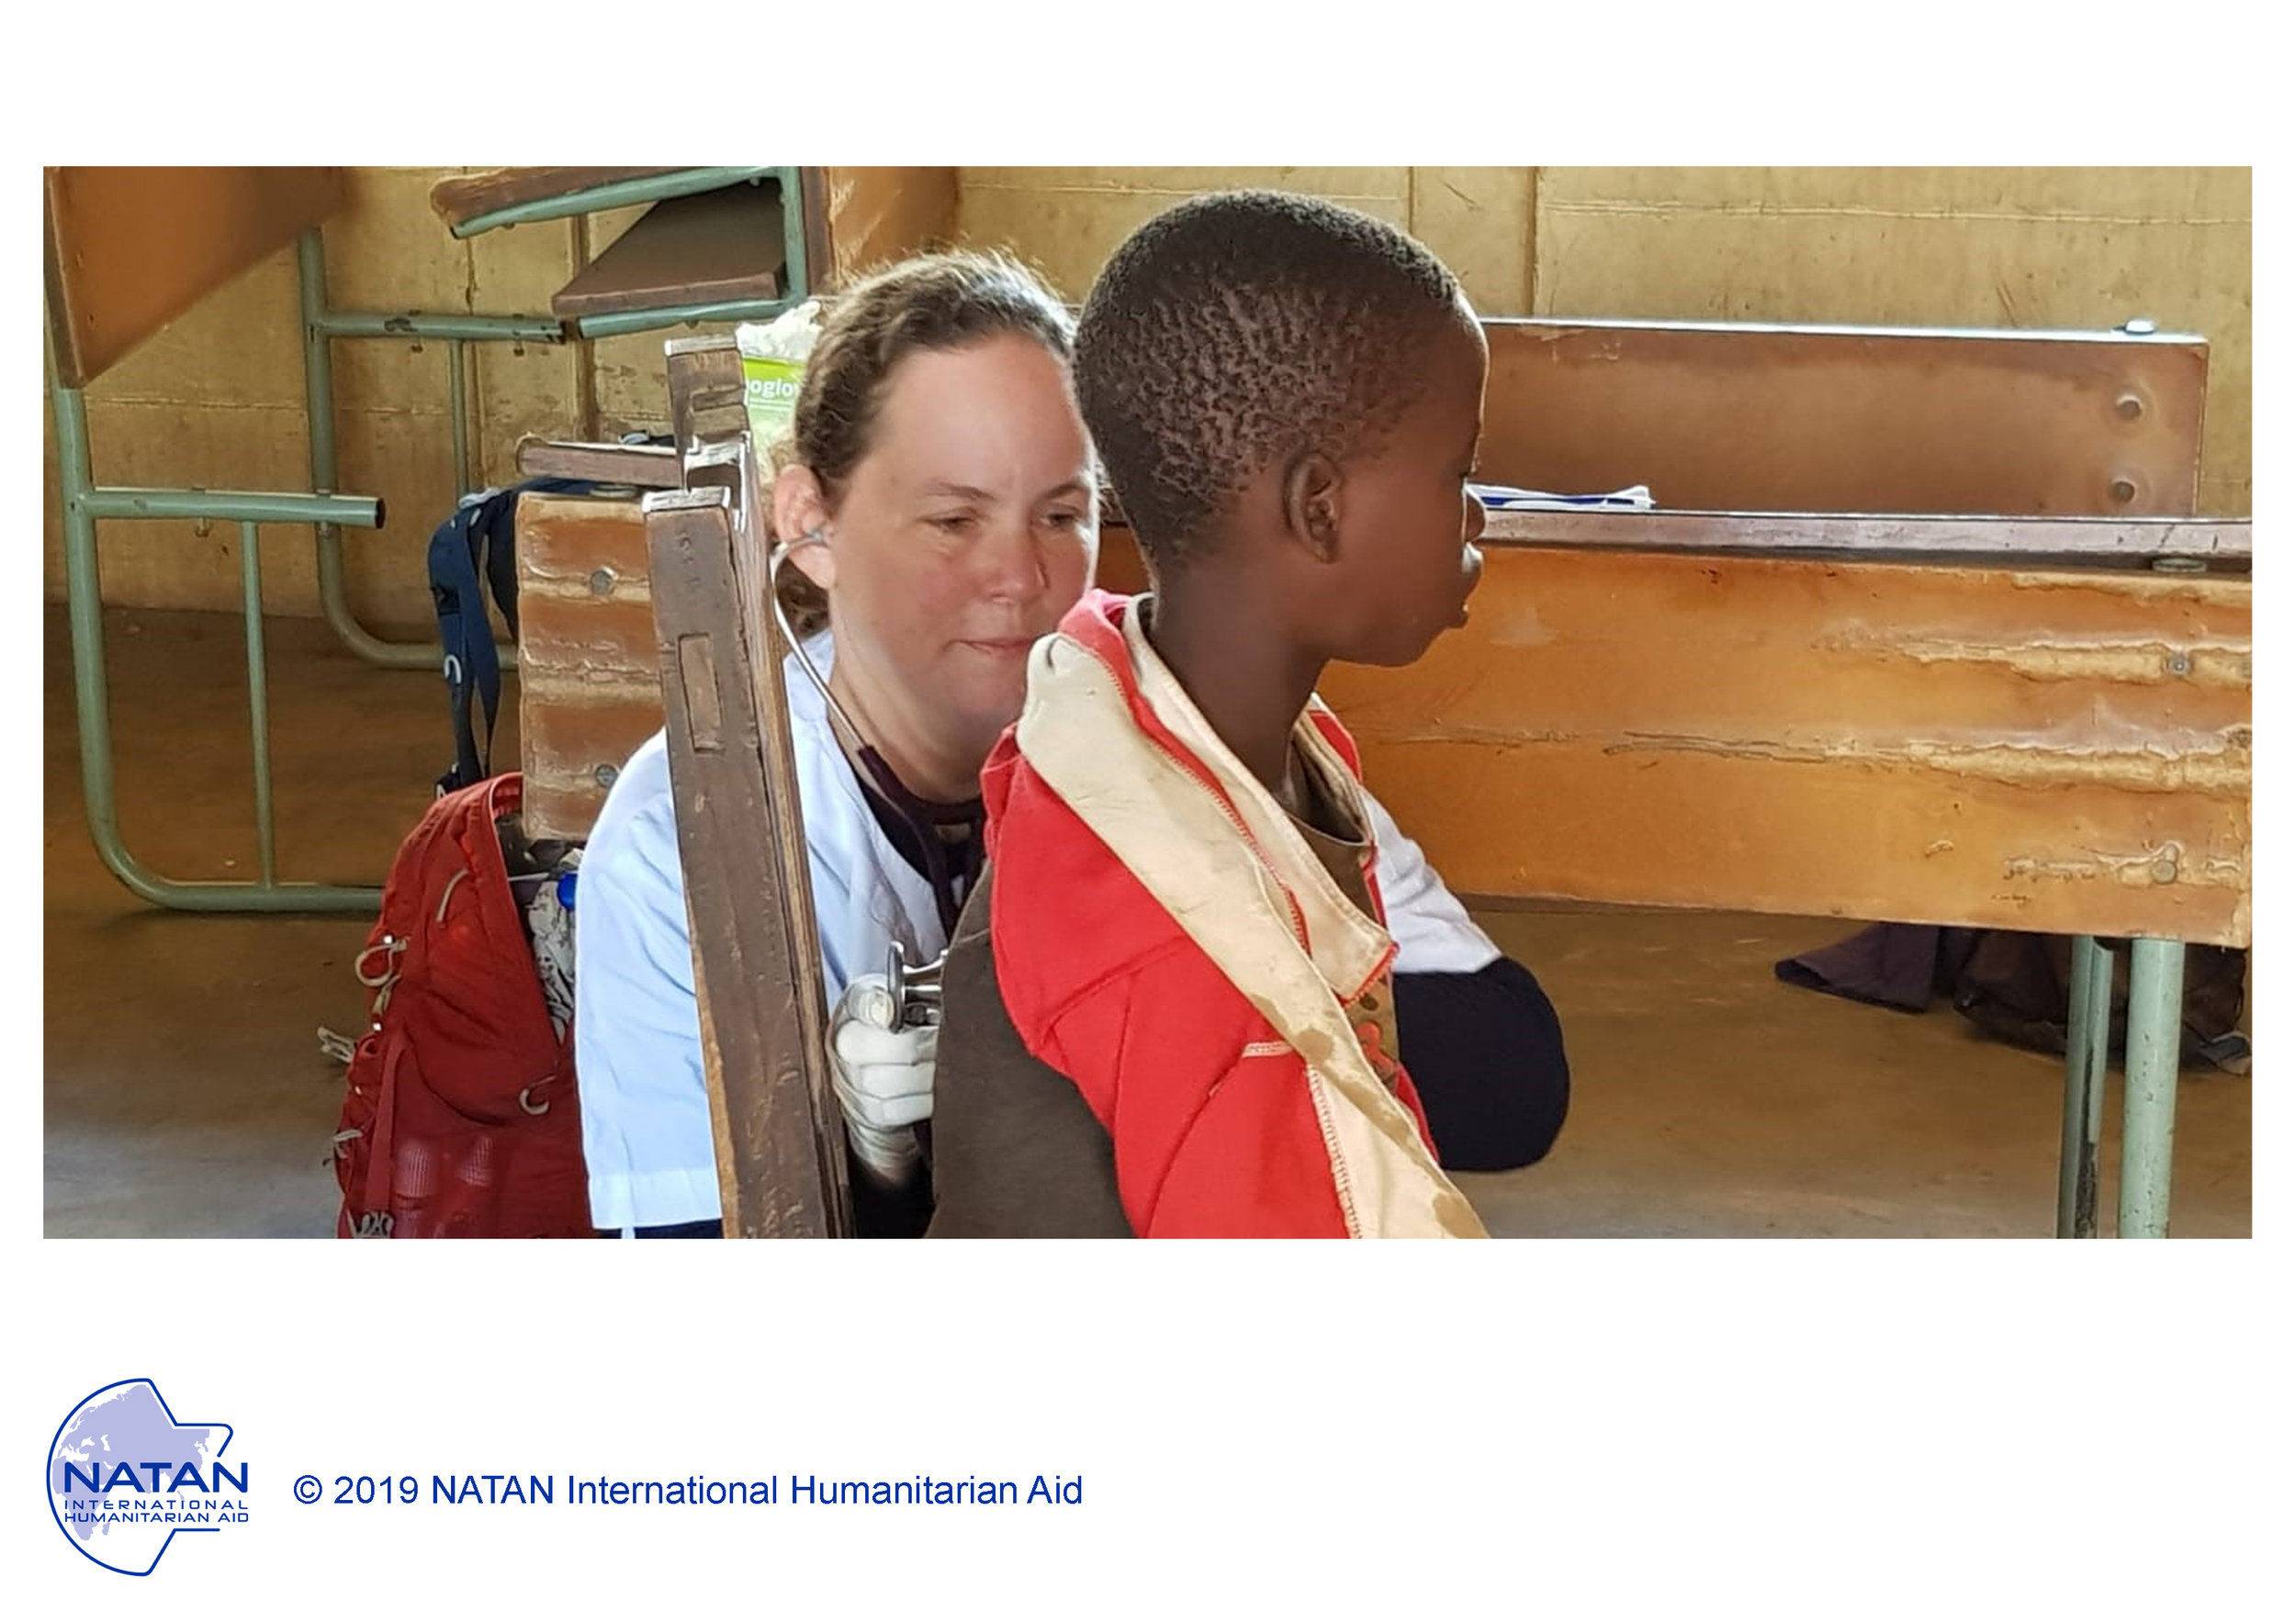 MOZAMBIQUE 2019: NATAN MD PROVIDEs PRIMARY MEDICAL CARE to a child in a remote village IN BEIRA REGION OF MOZAMBIQUE FOLLOWING CYCLONE IDAI